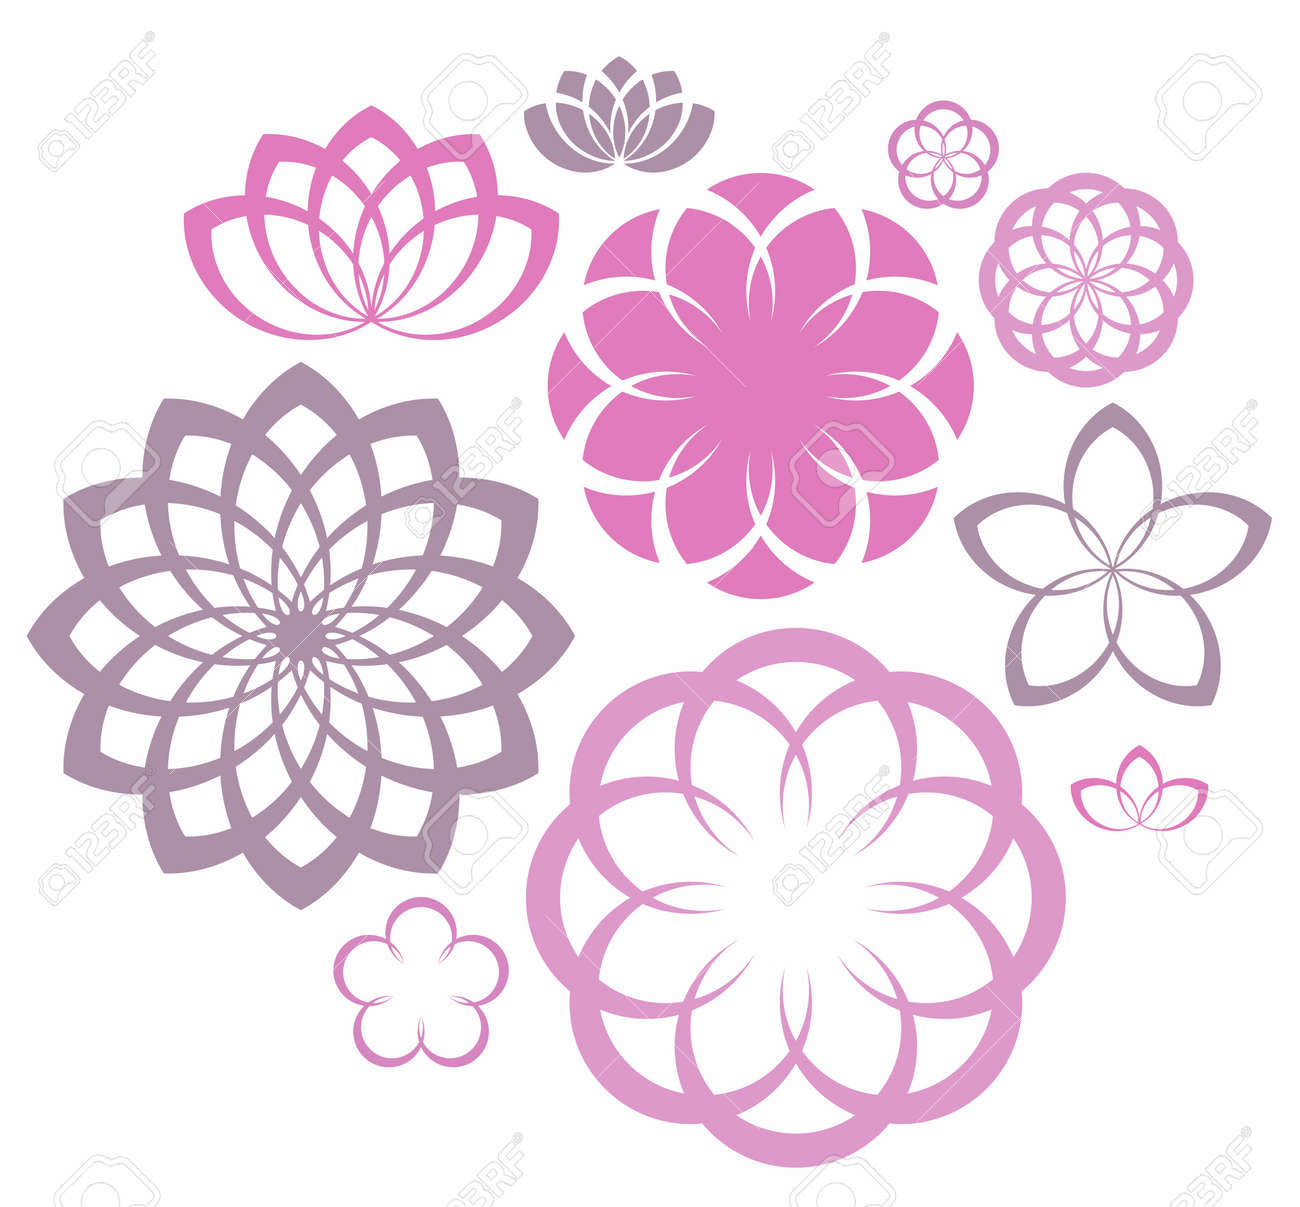 Flower icon set royalty free cliparts vectors and stock flower icon set stock vector 33094319 dhlflorist Images